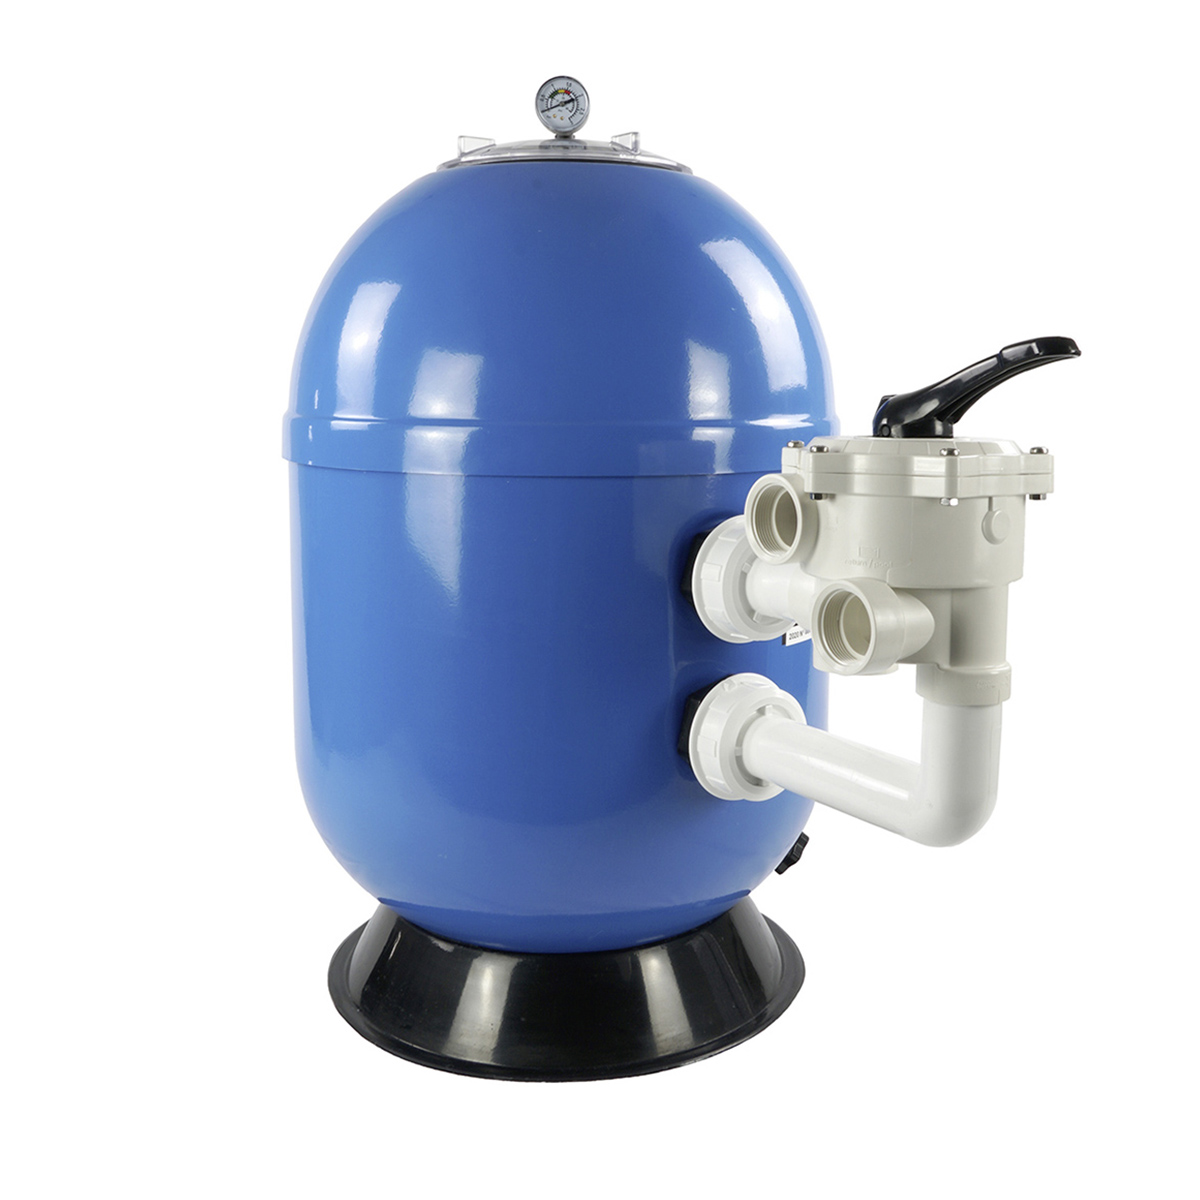 """Polyester filter VIENNA II laminated, side mount, blue, d620, cover screw type transparent, incl. manometer, piping kit and original Praher SM 1 ½"""" 6 manual way backwash valve Polyester filter VIENNA II laminated, side mount, blue, d620, cover screw type transparent, incl. manometer, piping kit and original Praher SM 1 ½"""" 6 manual way backwash valve"""